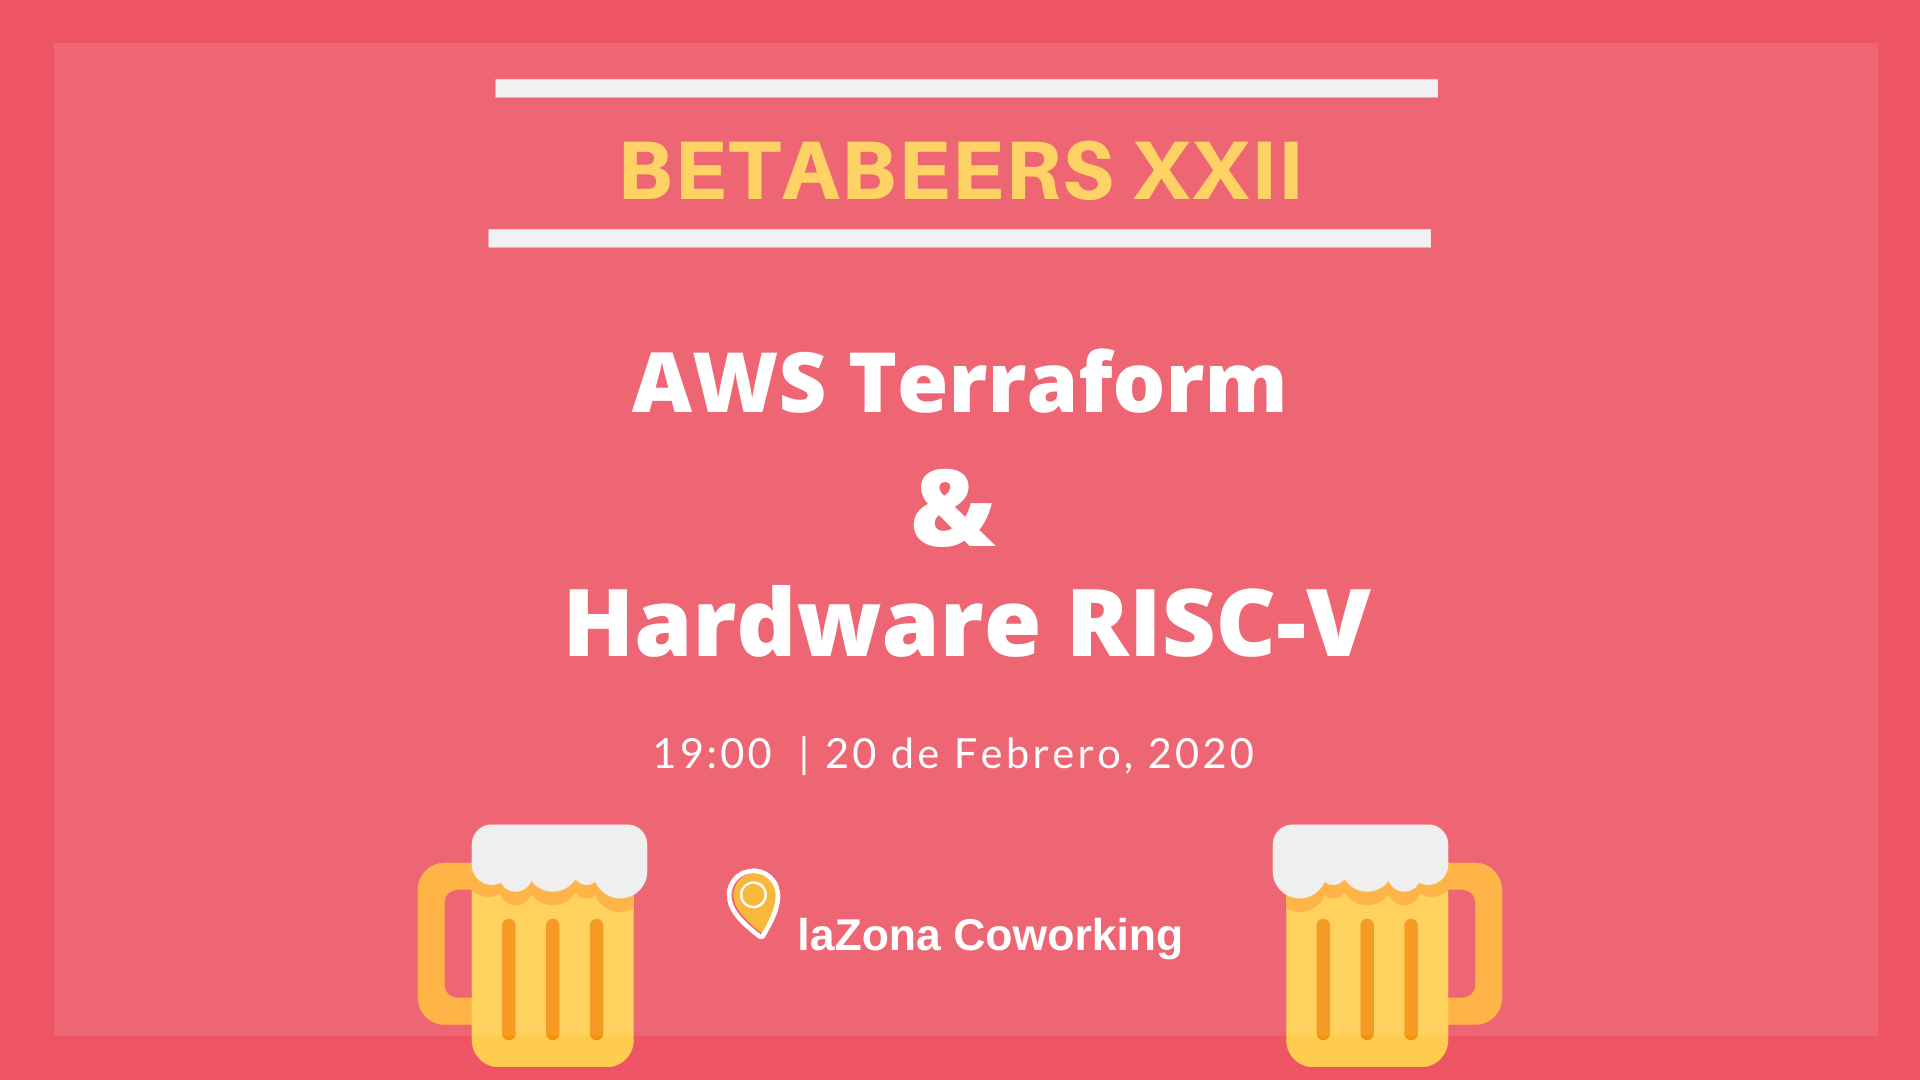 Betabeers XXII: AWS con Terraform y Hardware (RISC-V) CPU's